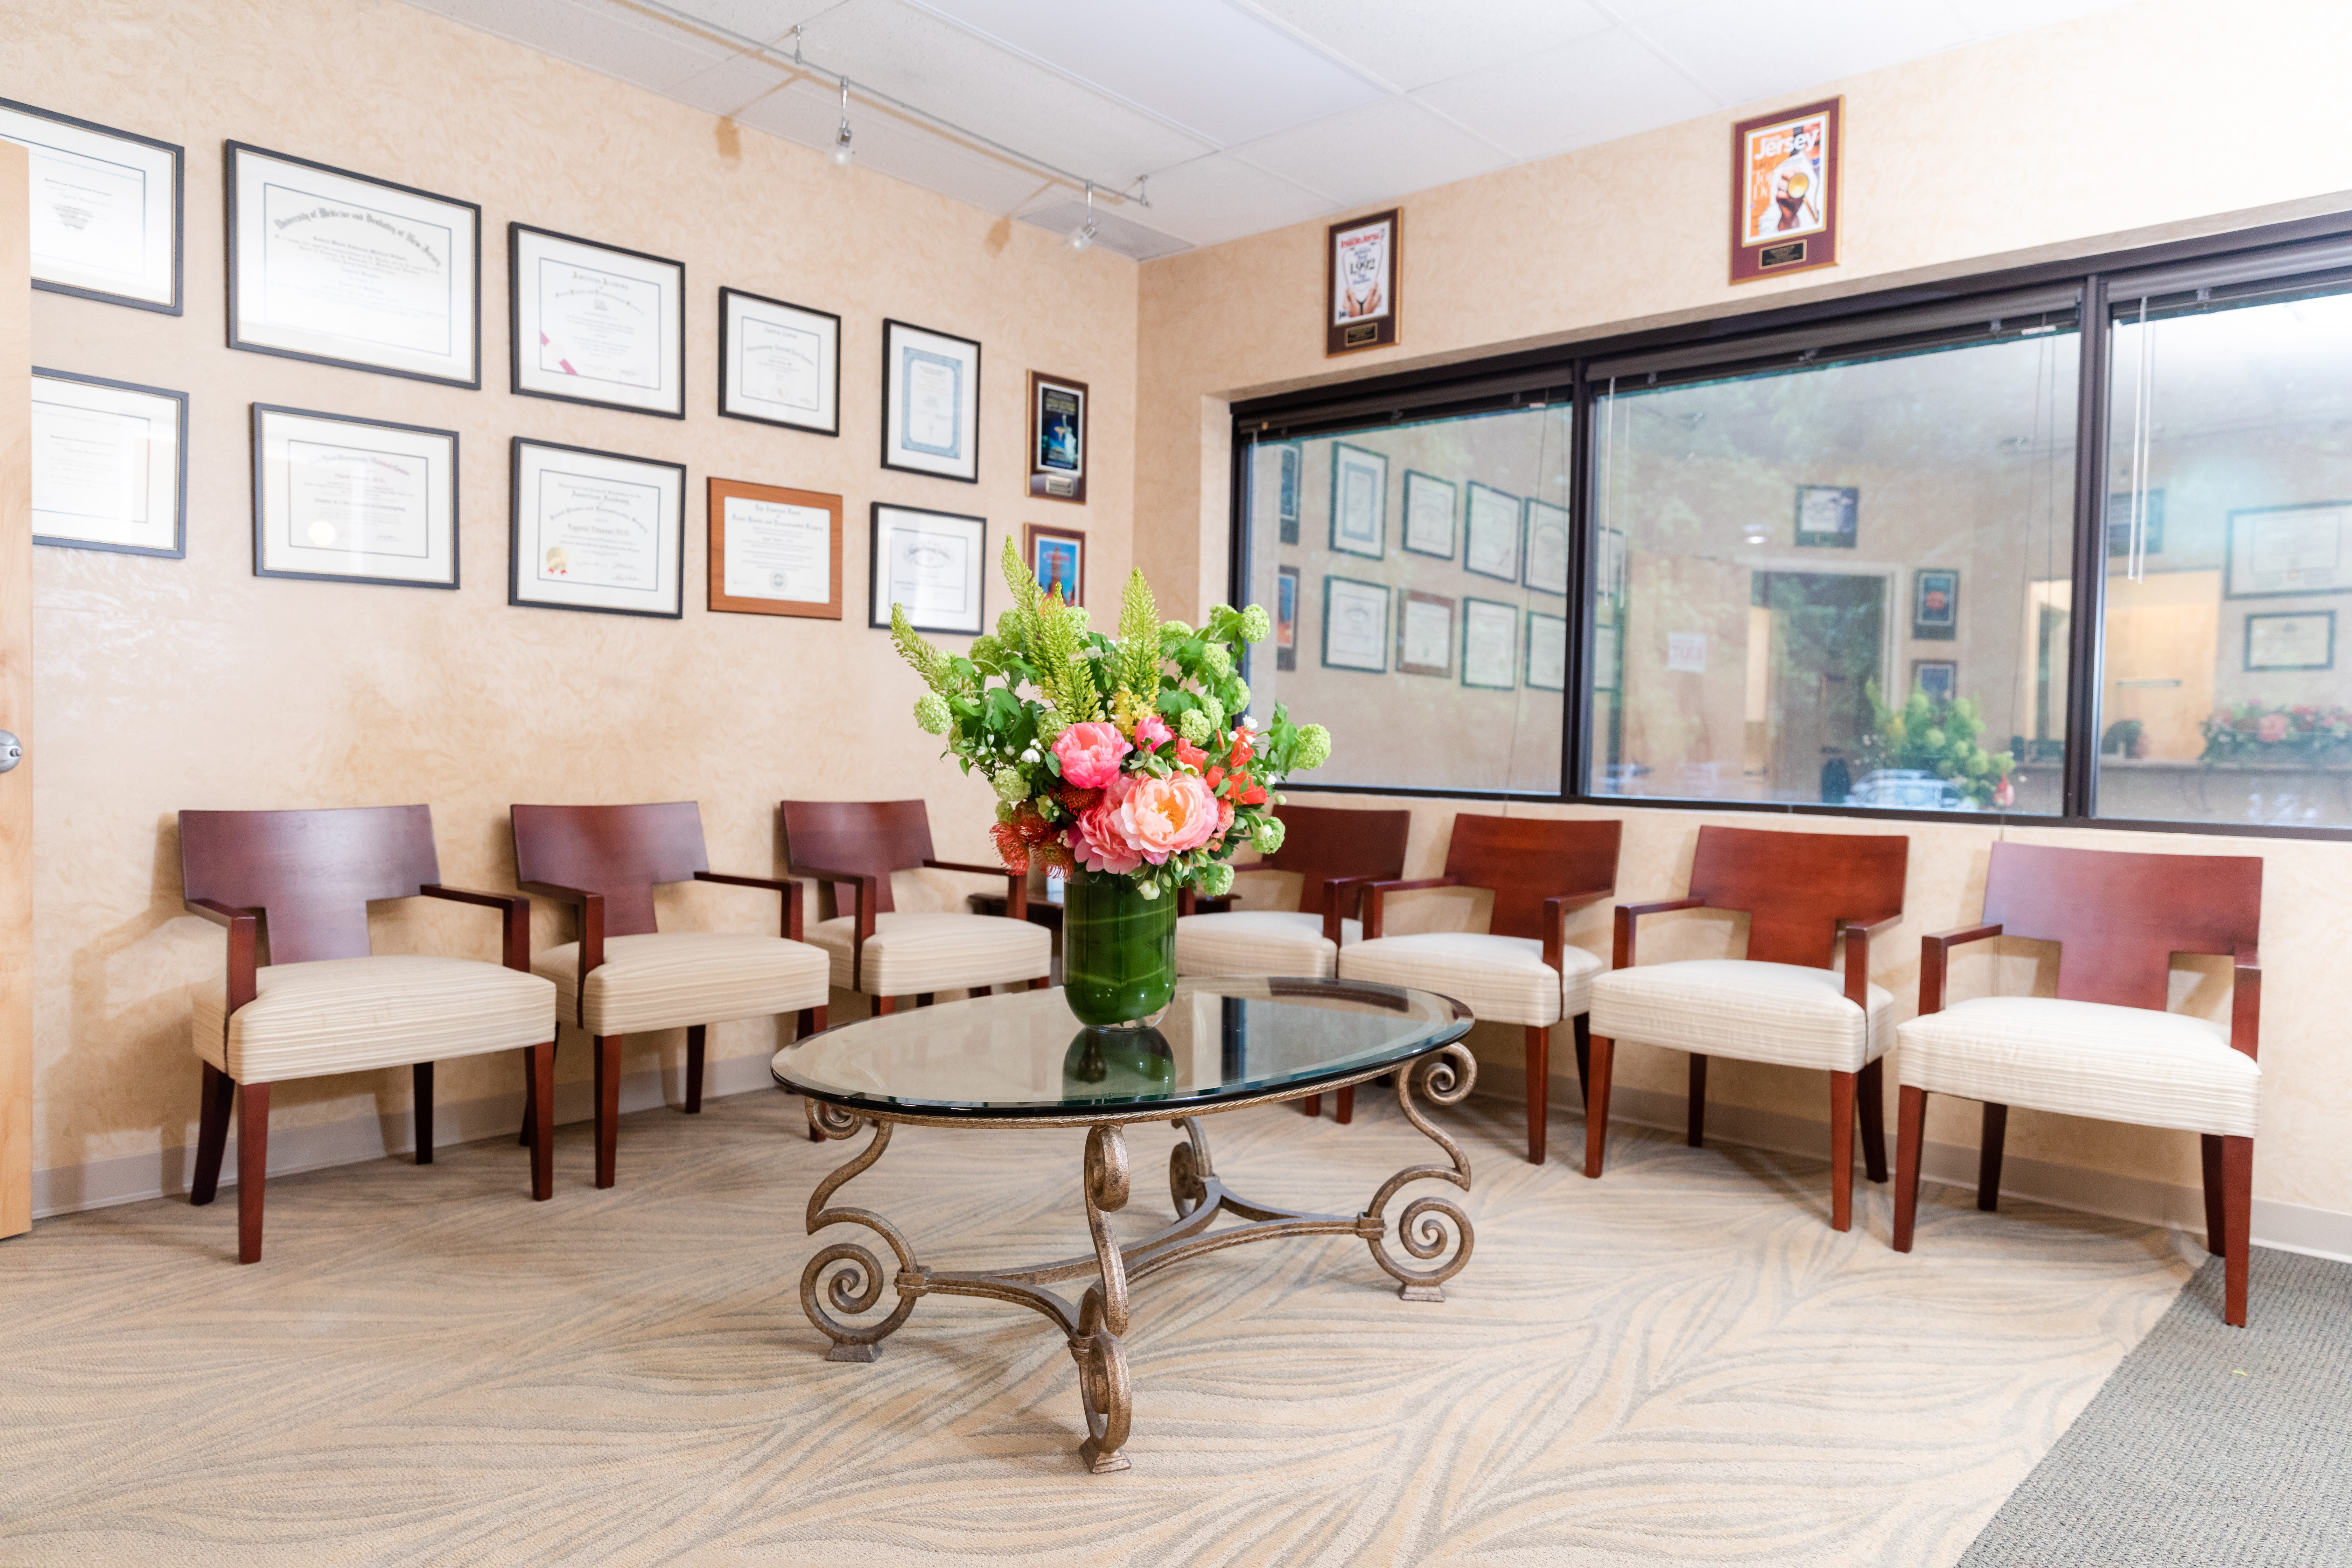 Waiting room at Dr. Eugenie Brunner's office in Princeton, NJ